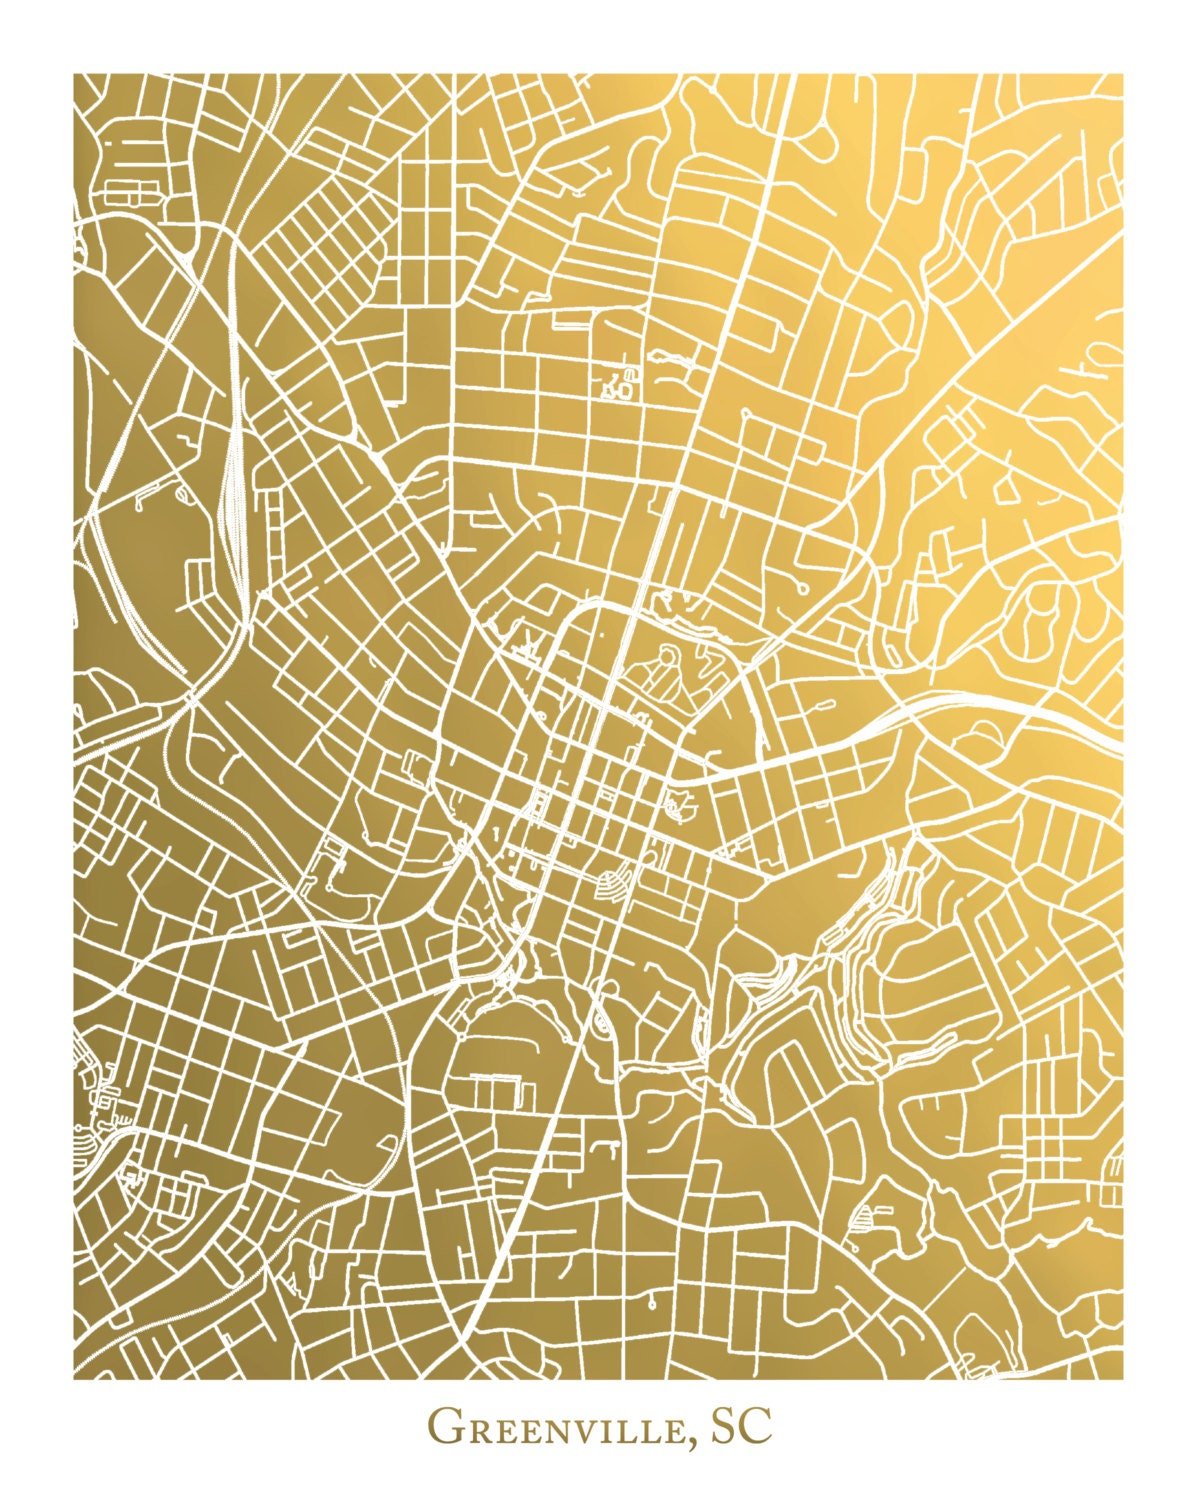 Crib for sale charleston sc - Greenville Sc Gold Foil Map Print Greenville South Carolina Map Greenville Sc Print Gold Foil Print Greenville Art Map Wall Art